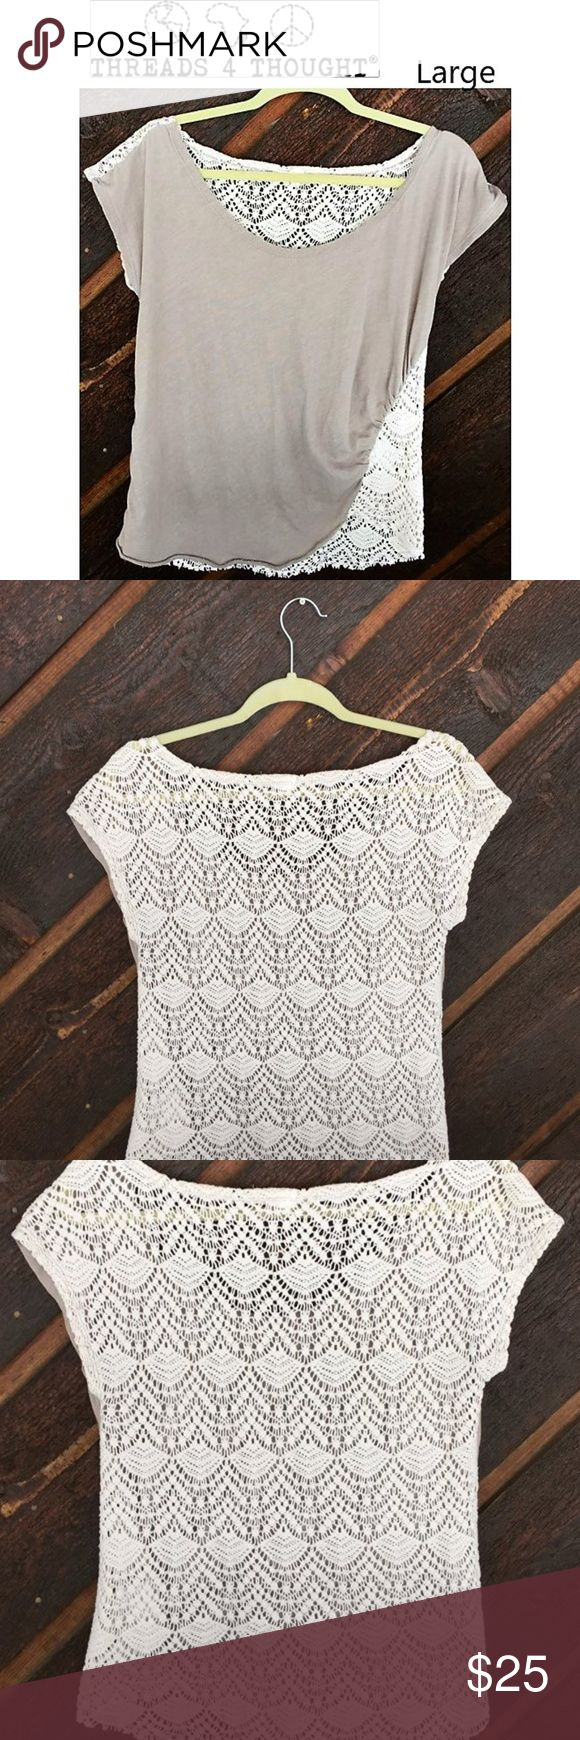 "Threads 4 Thought Crocheted back large Tee Large Threads 4 Thought crocheted back beige Tee with cap sleeves. Front Body is made of 60% organic cotton and 40% polyester.  Back is 85% cotton and 15% polyester.  17"" pit to pit and 24"" length EUC Threads 4 Thought Tops Tees - Short Sleeve"